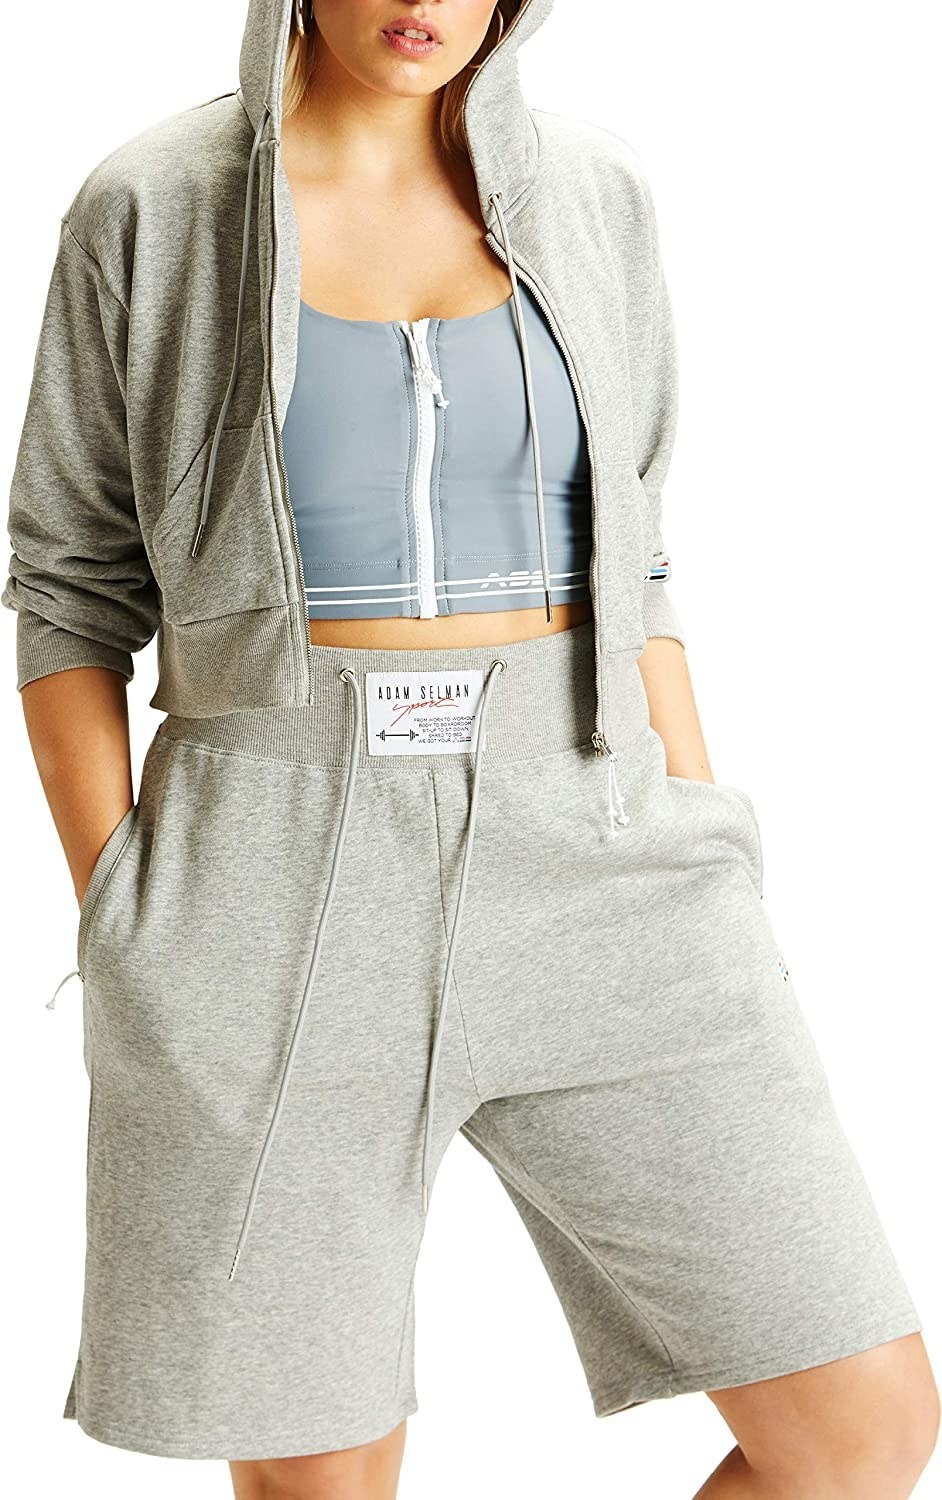 A model with her hands in her pockets wears the Adam Selman Sport hi-rise sweatshorts with a cropped hoodie and sports bra.